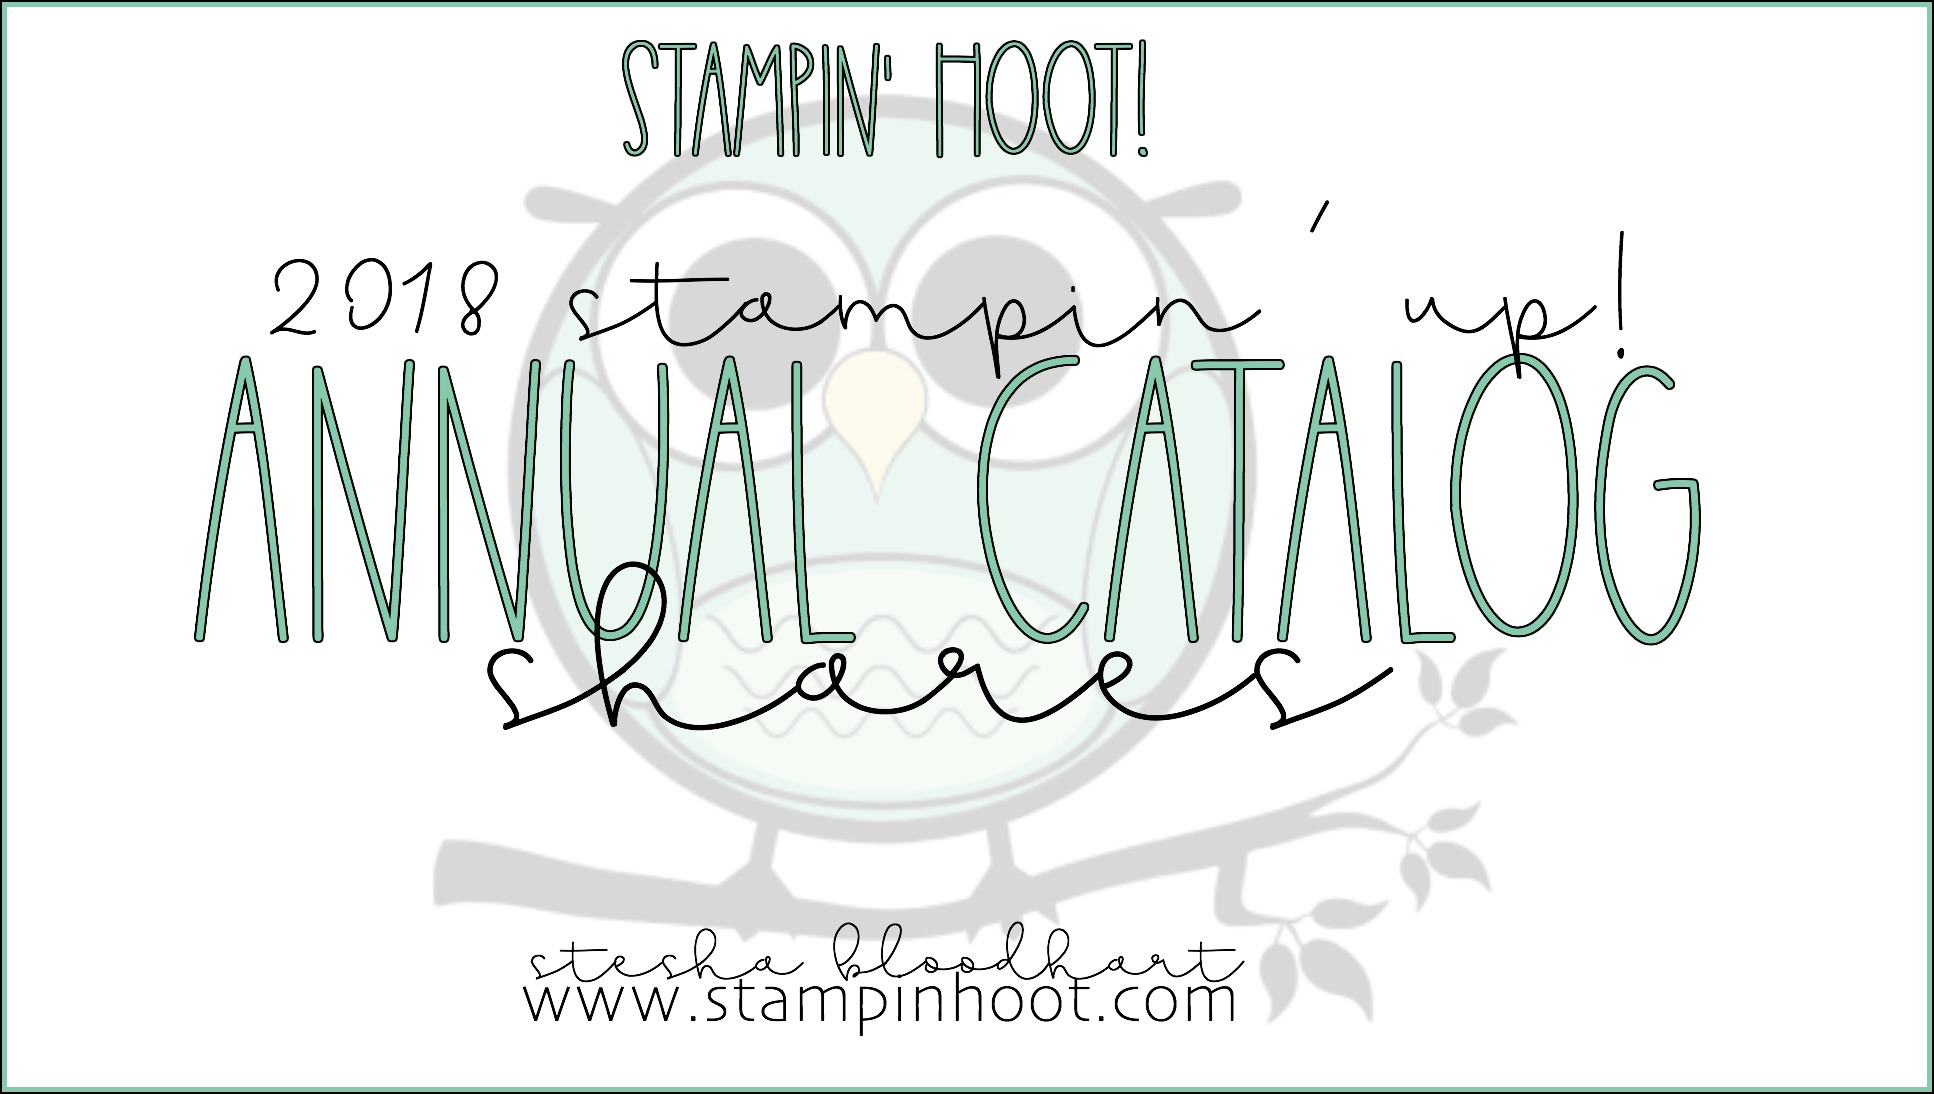 2018-2019 Stampin' Up! ANNUAL CATALOG SHARES: RIBBON, DESIGNER SERIES PAPER & EMBELLISHMENTS. SEE STAMPINHOOT.COM FOR DETAILS AND TO SIGN UP! #steshabloodhart #stampinhoot